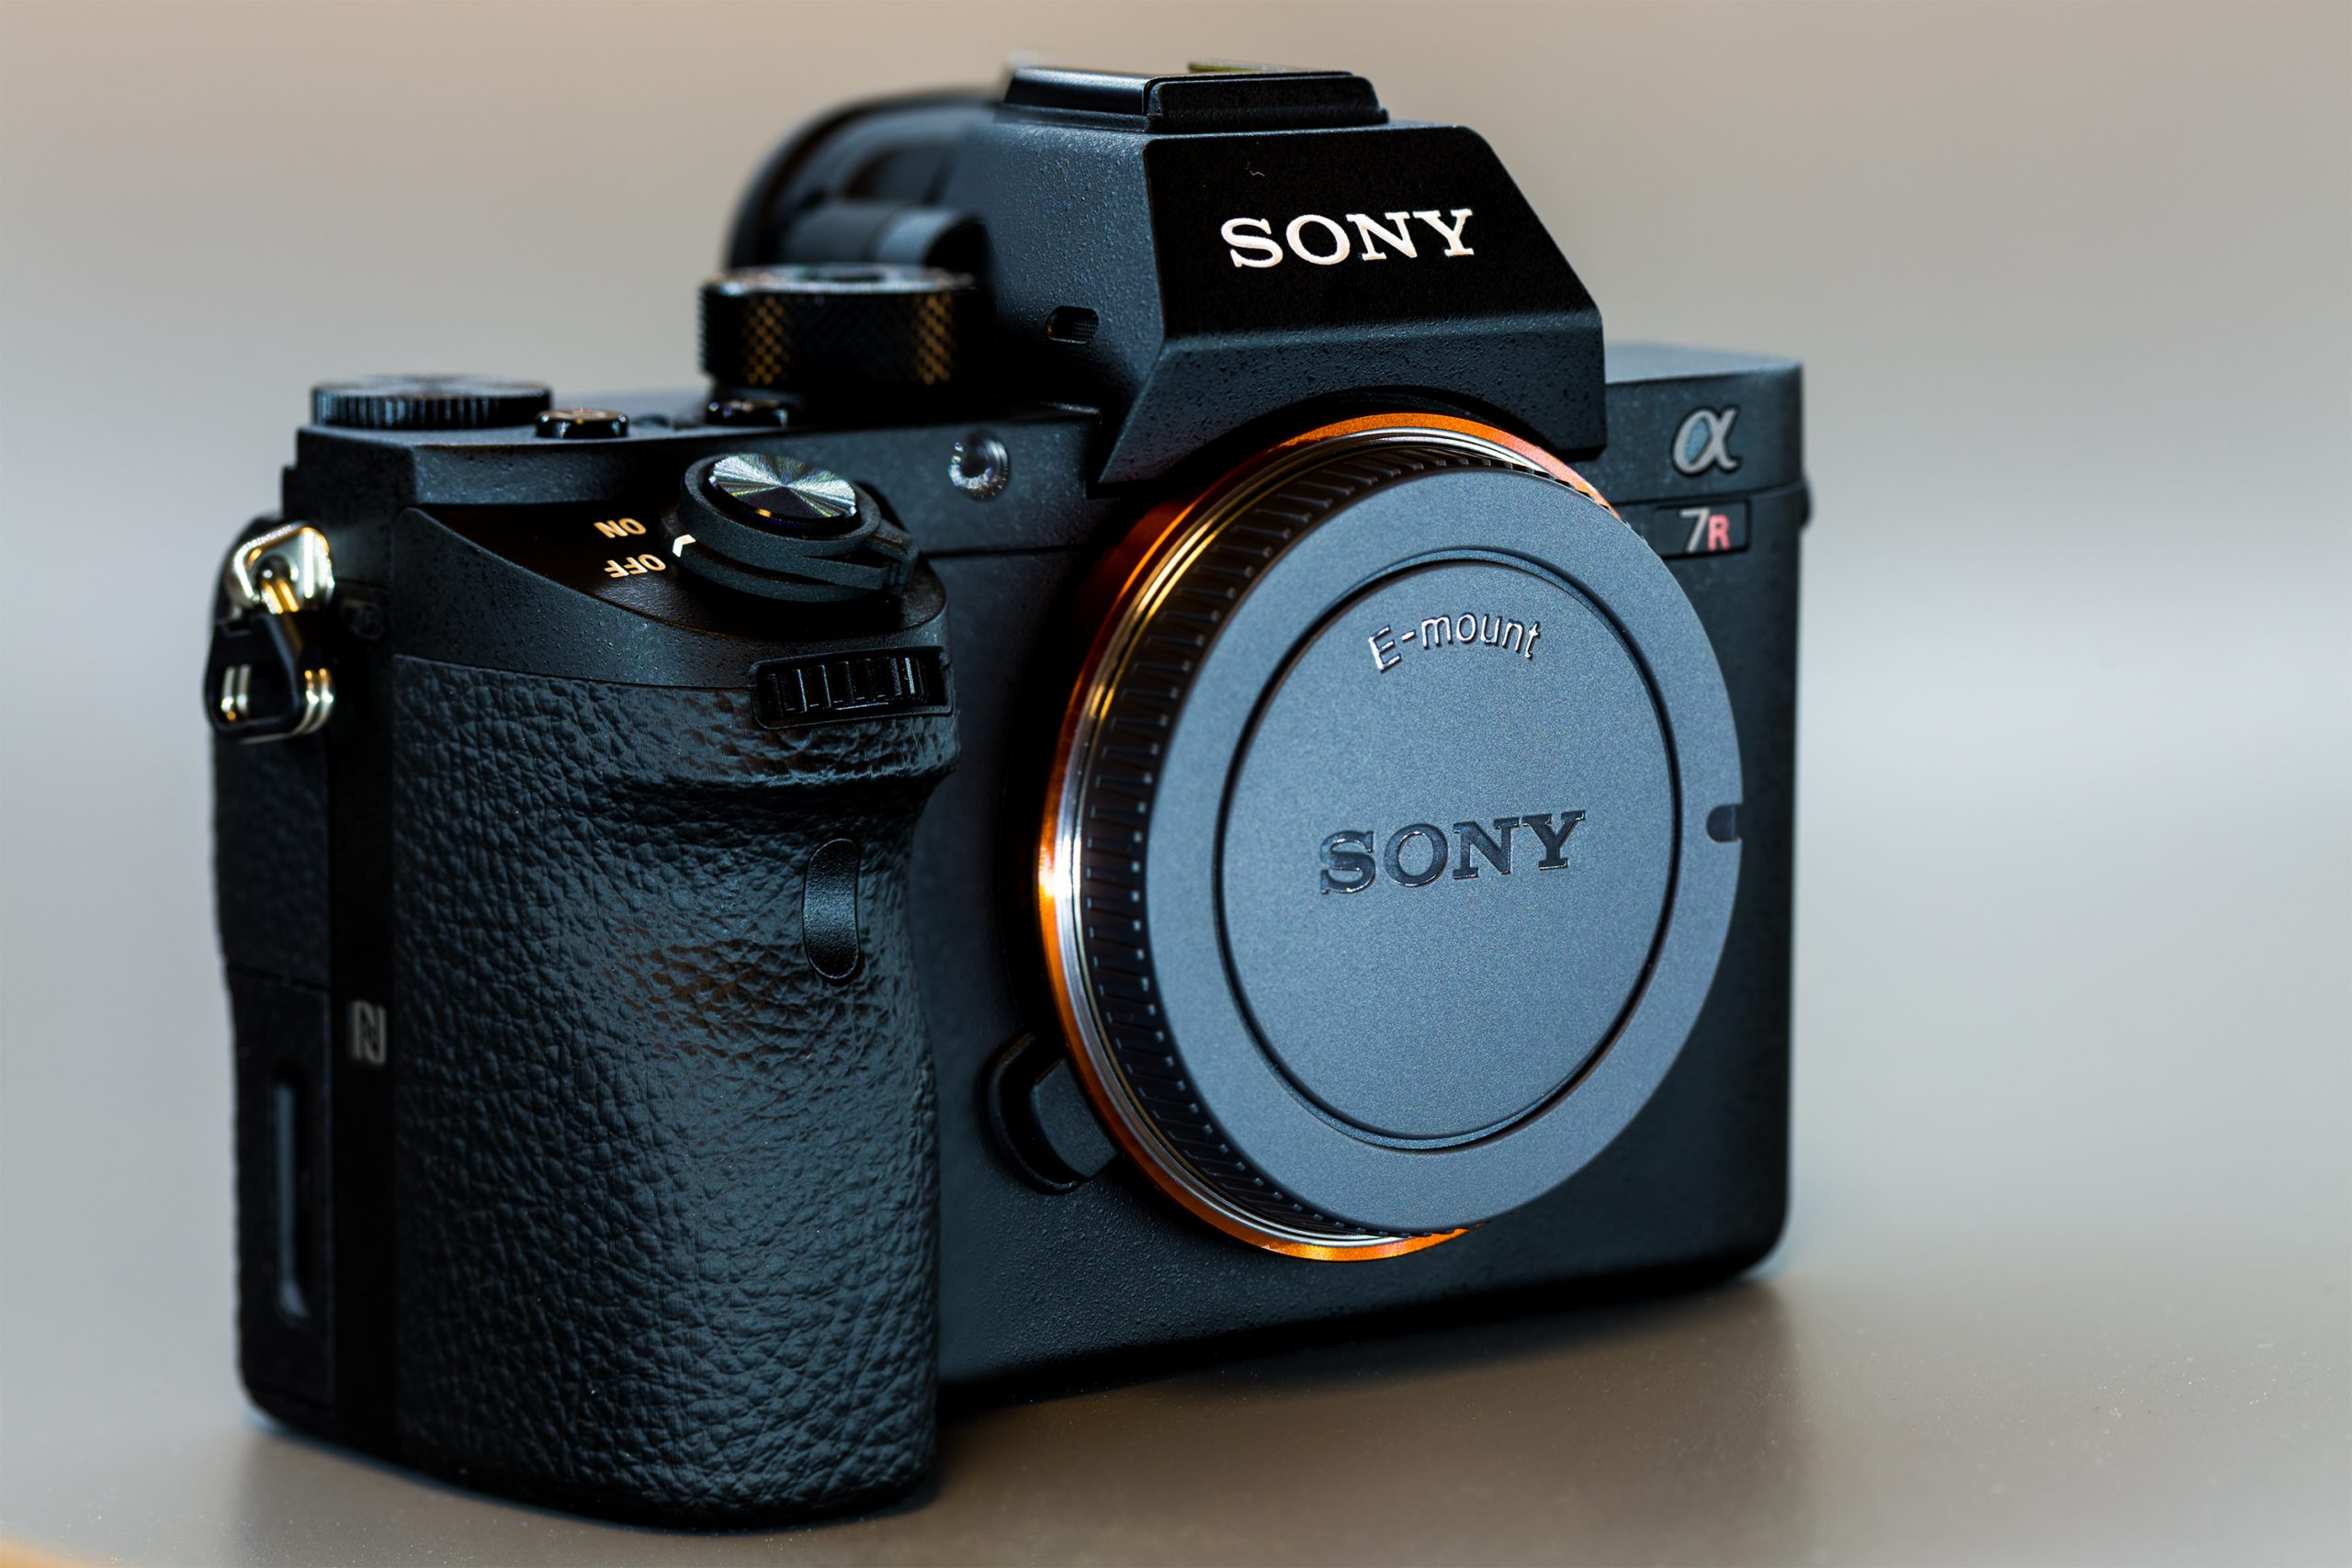 Sony Digitalkamera